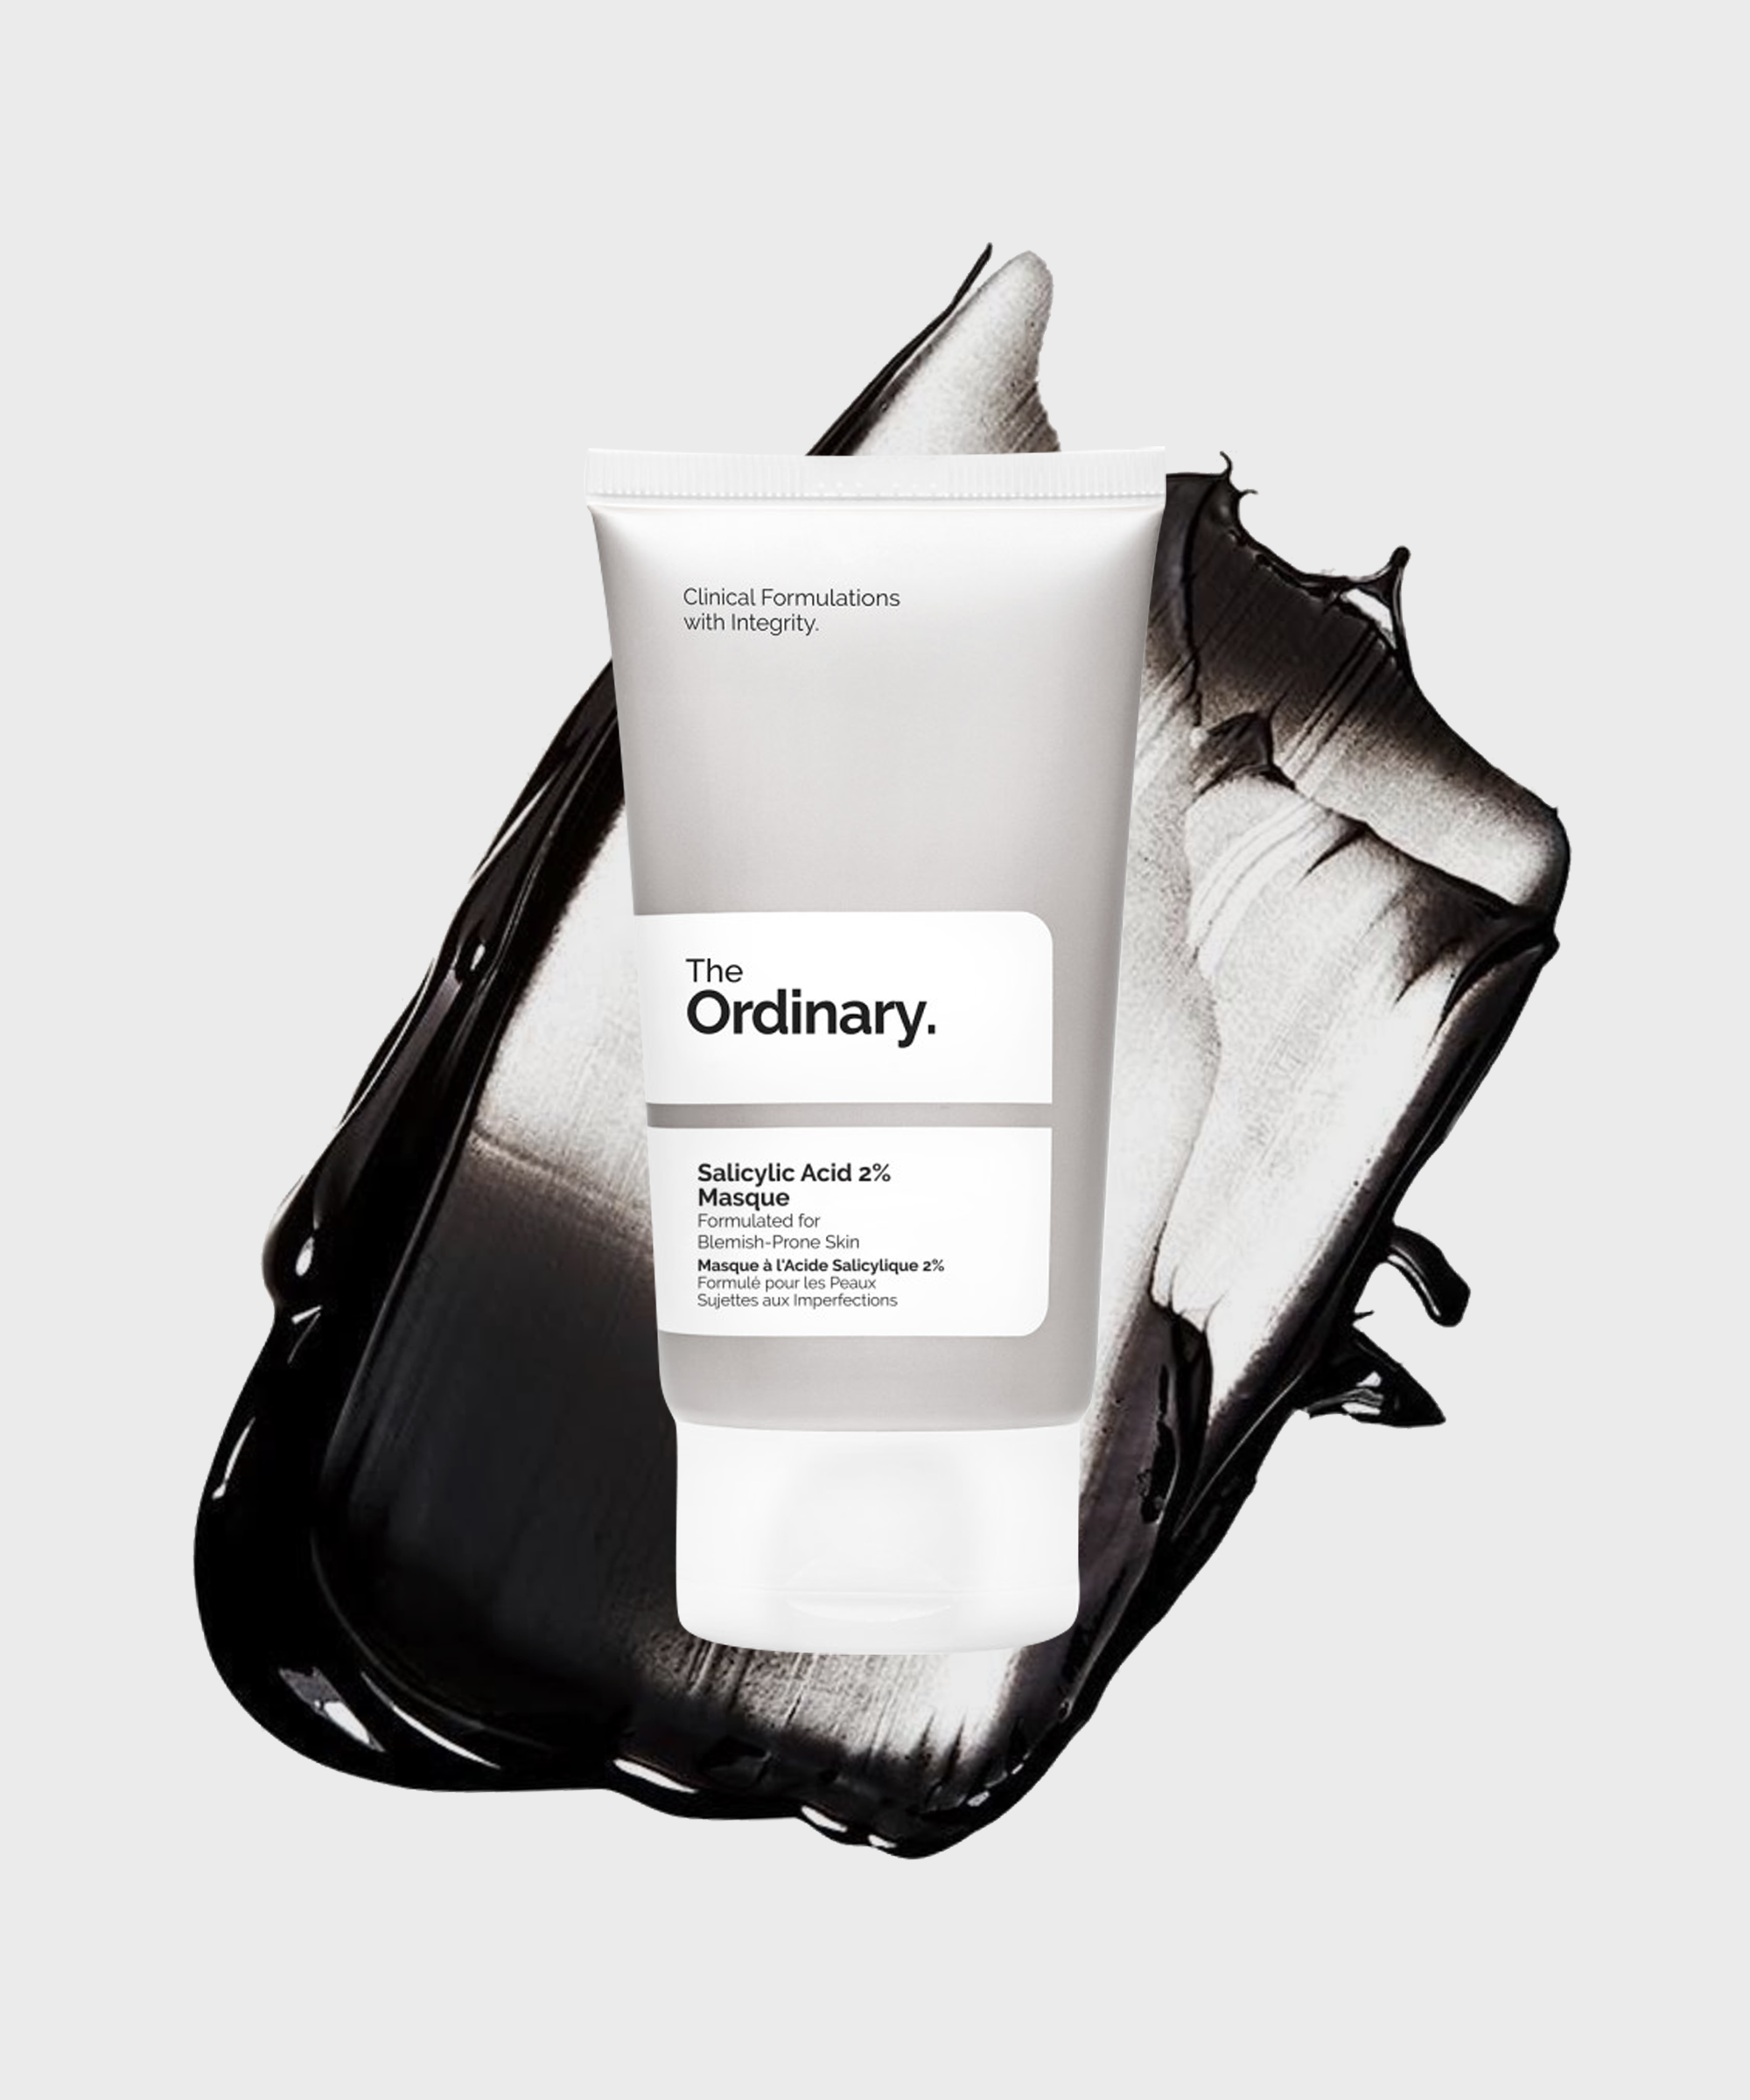 The Ordinary's First Face Mask Worked Wonders On My Acne-Prone Skin